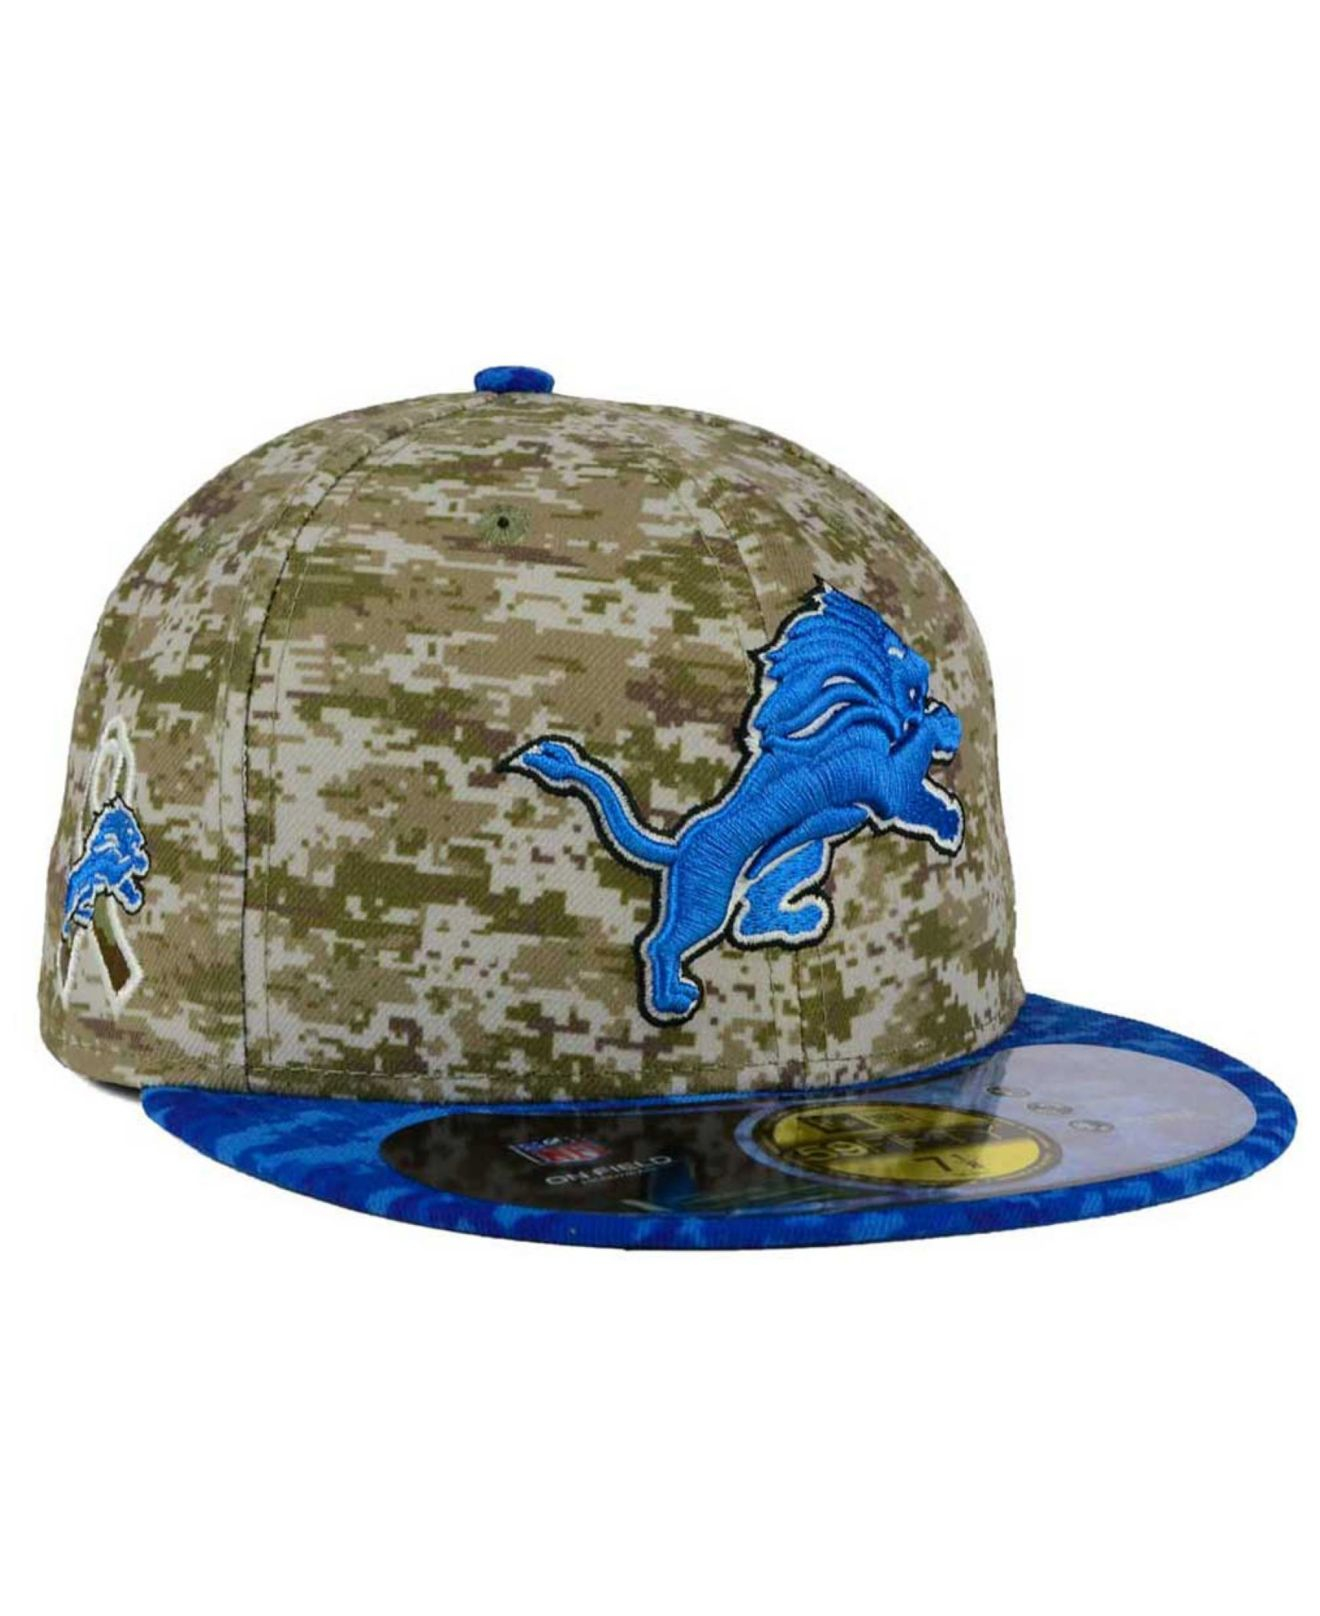 ee6da05664e Lyst - KTZ Detroit Lions Salute To Service 59fifty Cap in Green for Men